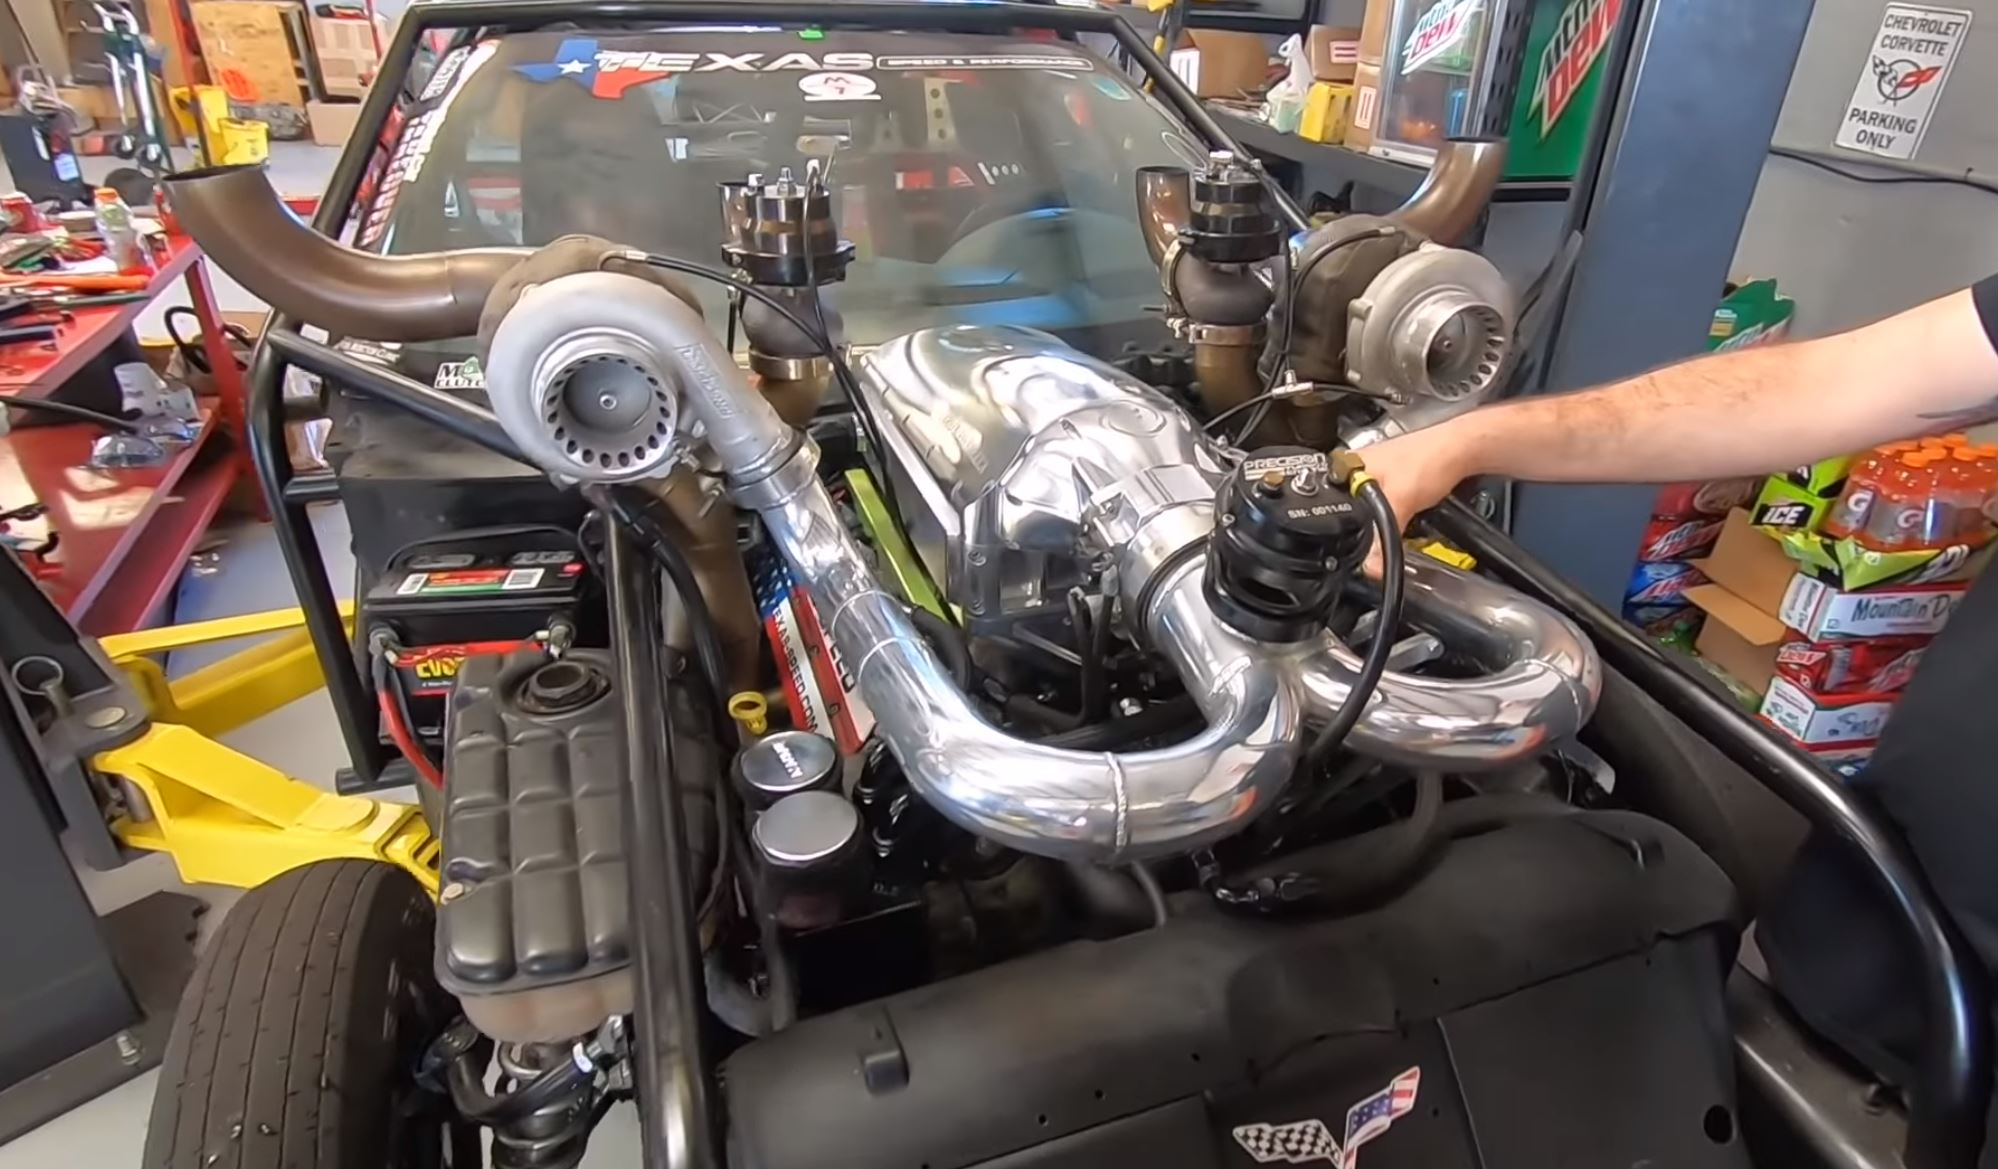 Leroy 2.5 Comes To Life! The New Engine Sounds Amazing And Is Ready For Big Boost